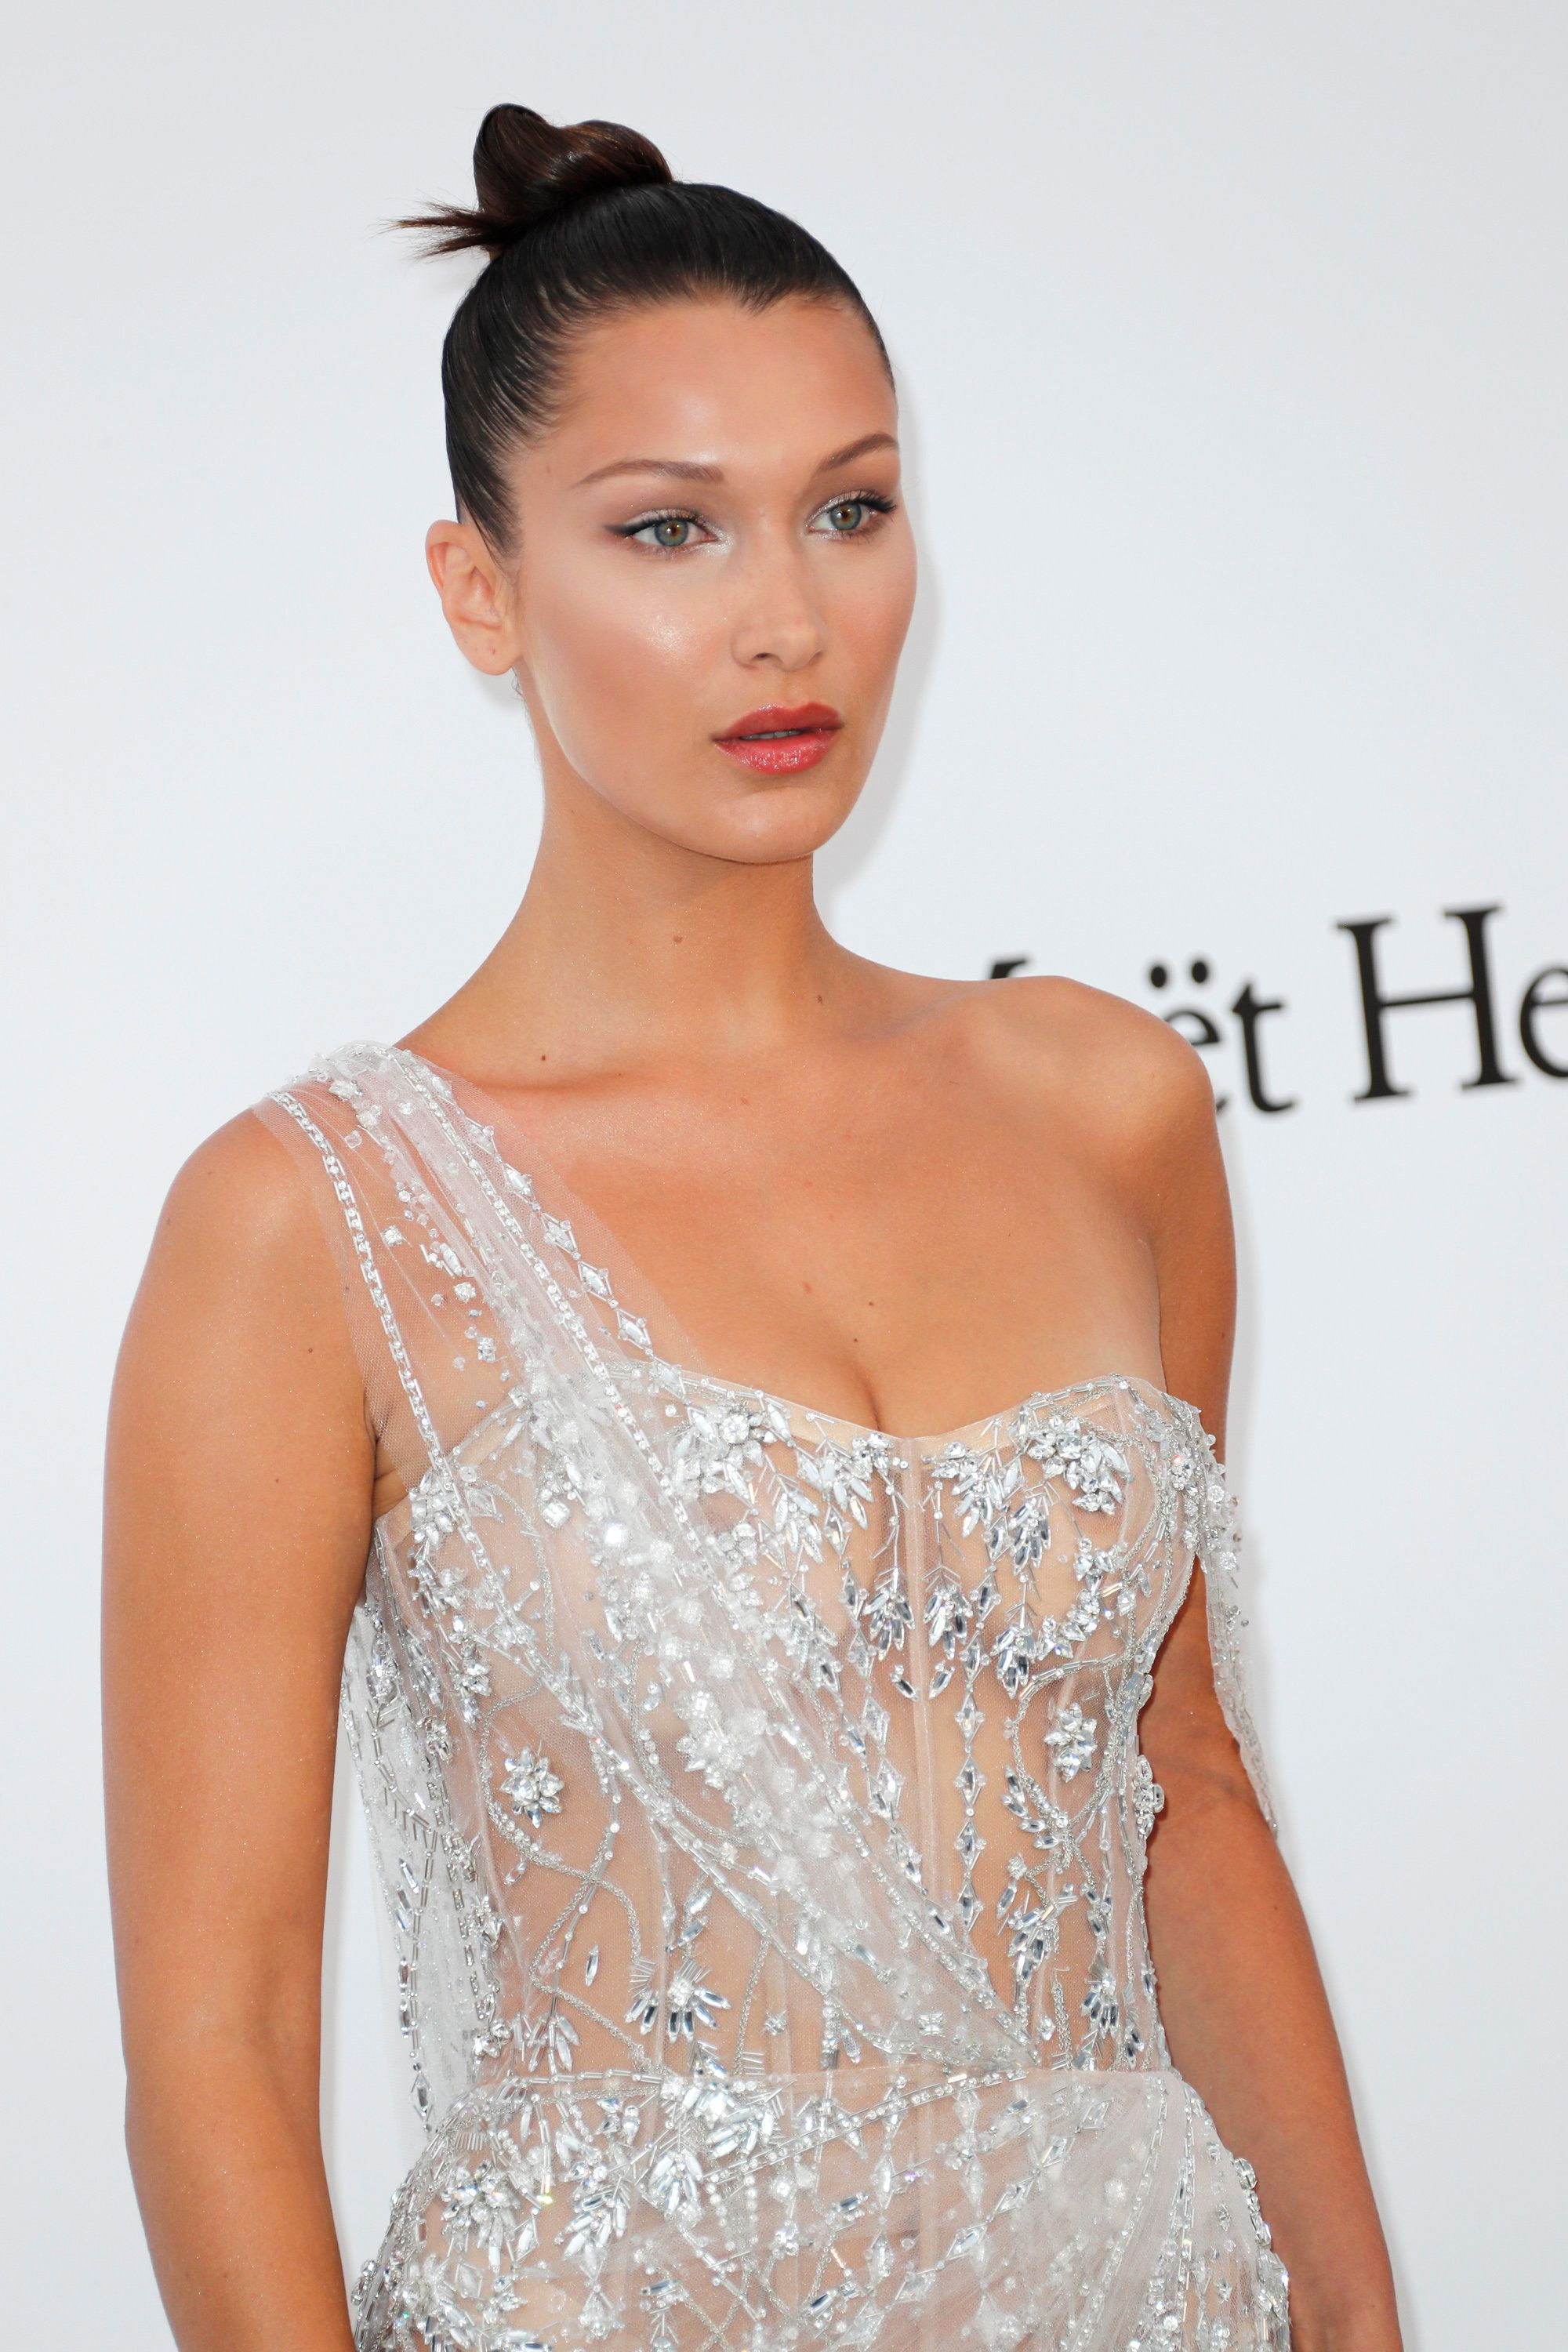 CAP D'ANTIBES, FRANCE - MAY 25:  Bella Hadid arrives at the amfAR Gala Cannes 2017 at Hotel du Cap-Eden-Roc on May 25, 2017 in Cap d'Antibes, France.  (Photo by David M Benett/Dave Benett/Getty Images)